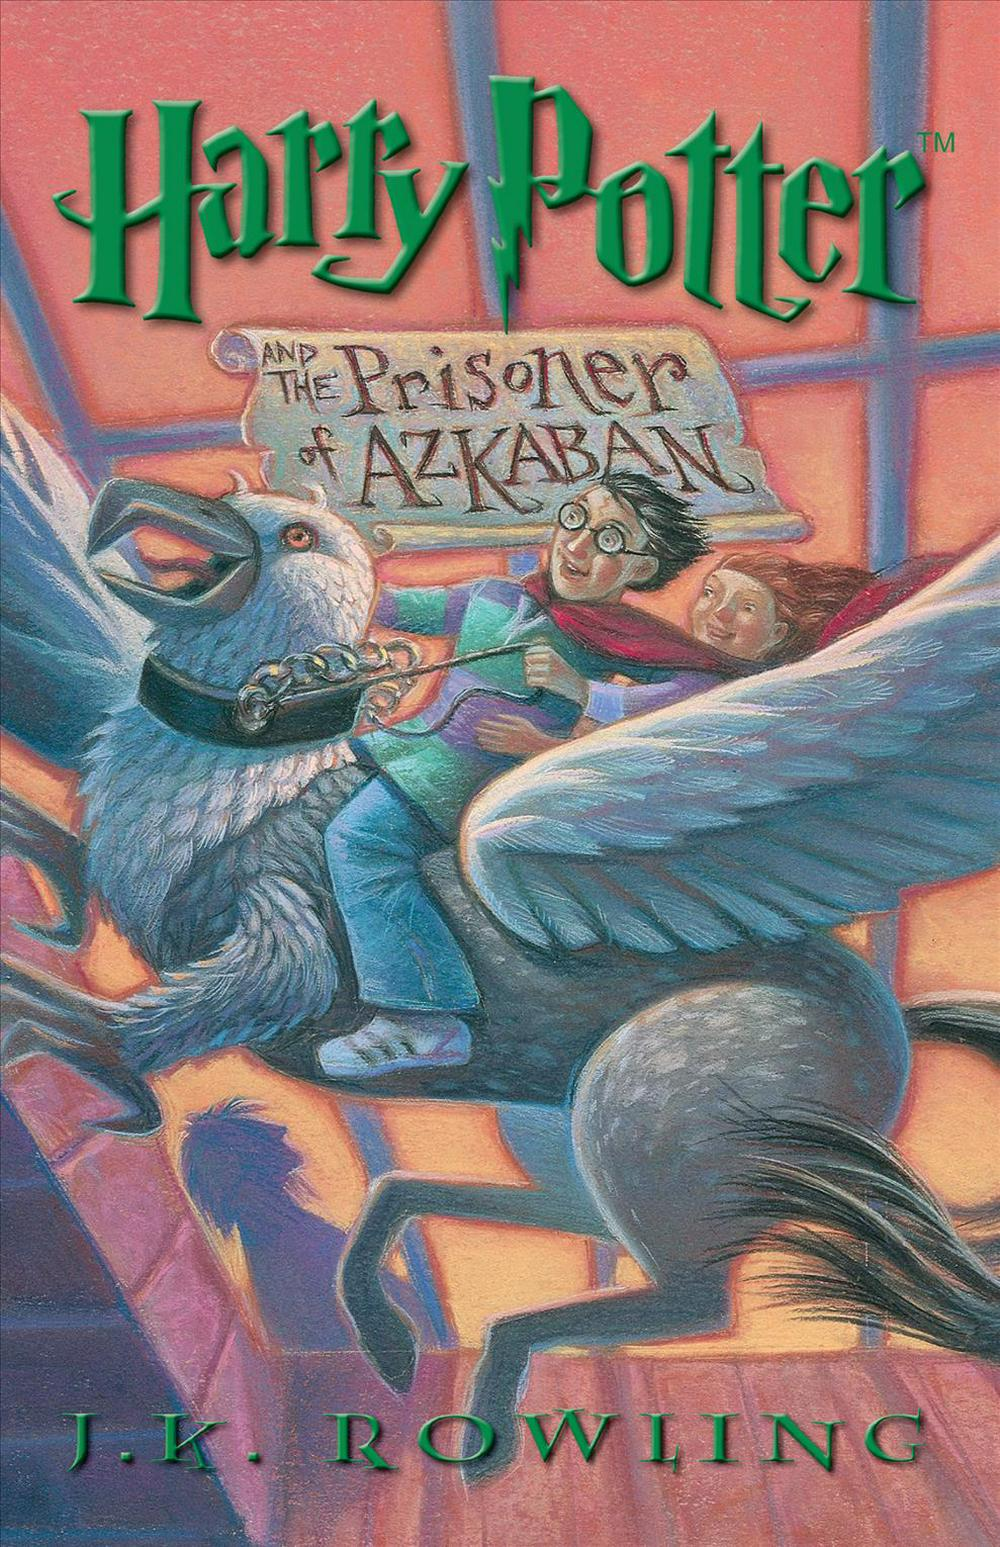 a book analysis of harry potter and the prisoner of azkaban by j k rowling In harry potter and the prisoner of azkaban the prisoner of azkaban, which takes jk rowling's harry potter series: movie review & book.